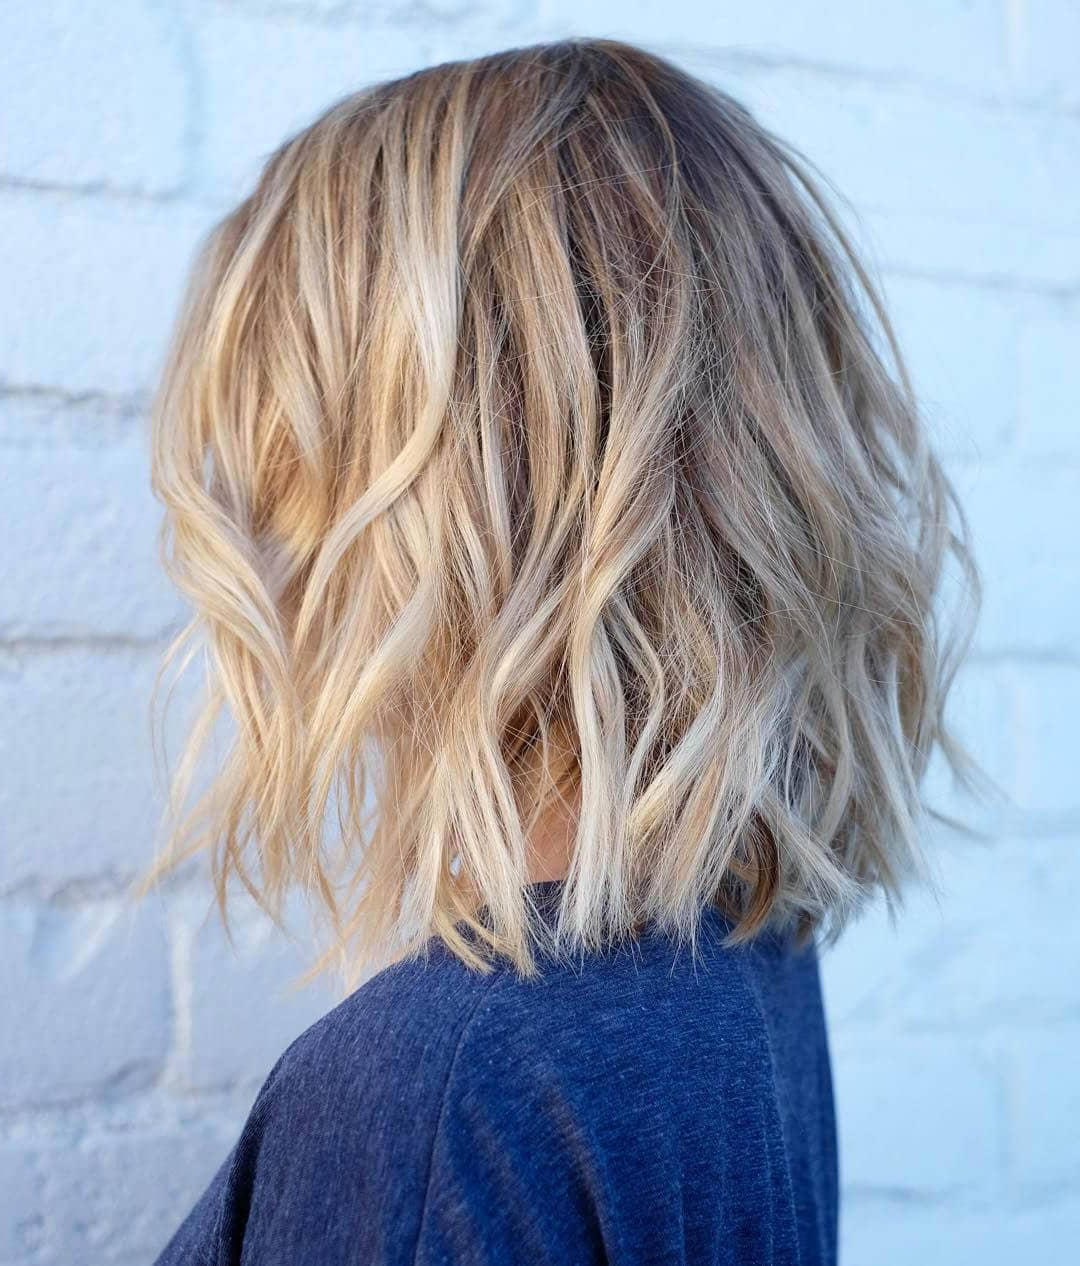 50 Fresh Short Blonde Hair Ideas To Update Your Style In 2018 Throughout White Blonde Curly Layered Bob Hairstyles (View 13 of 25)